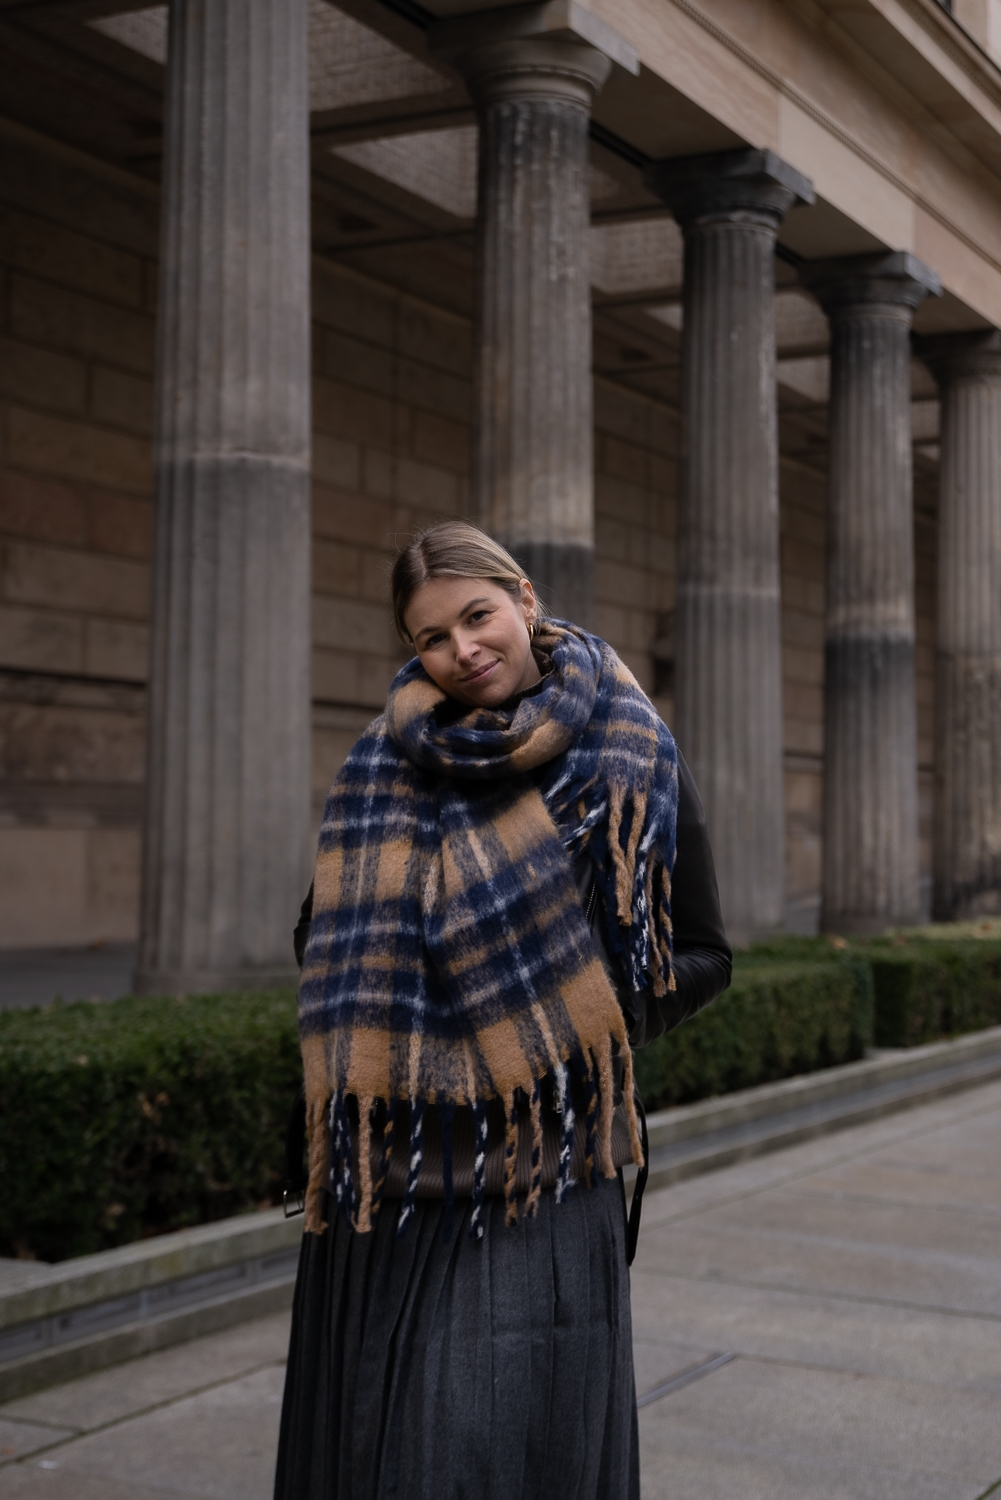 Must-haves-Winter-xxl-schal-wolle-oversized-modeblog-berlin